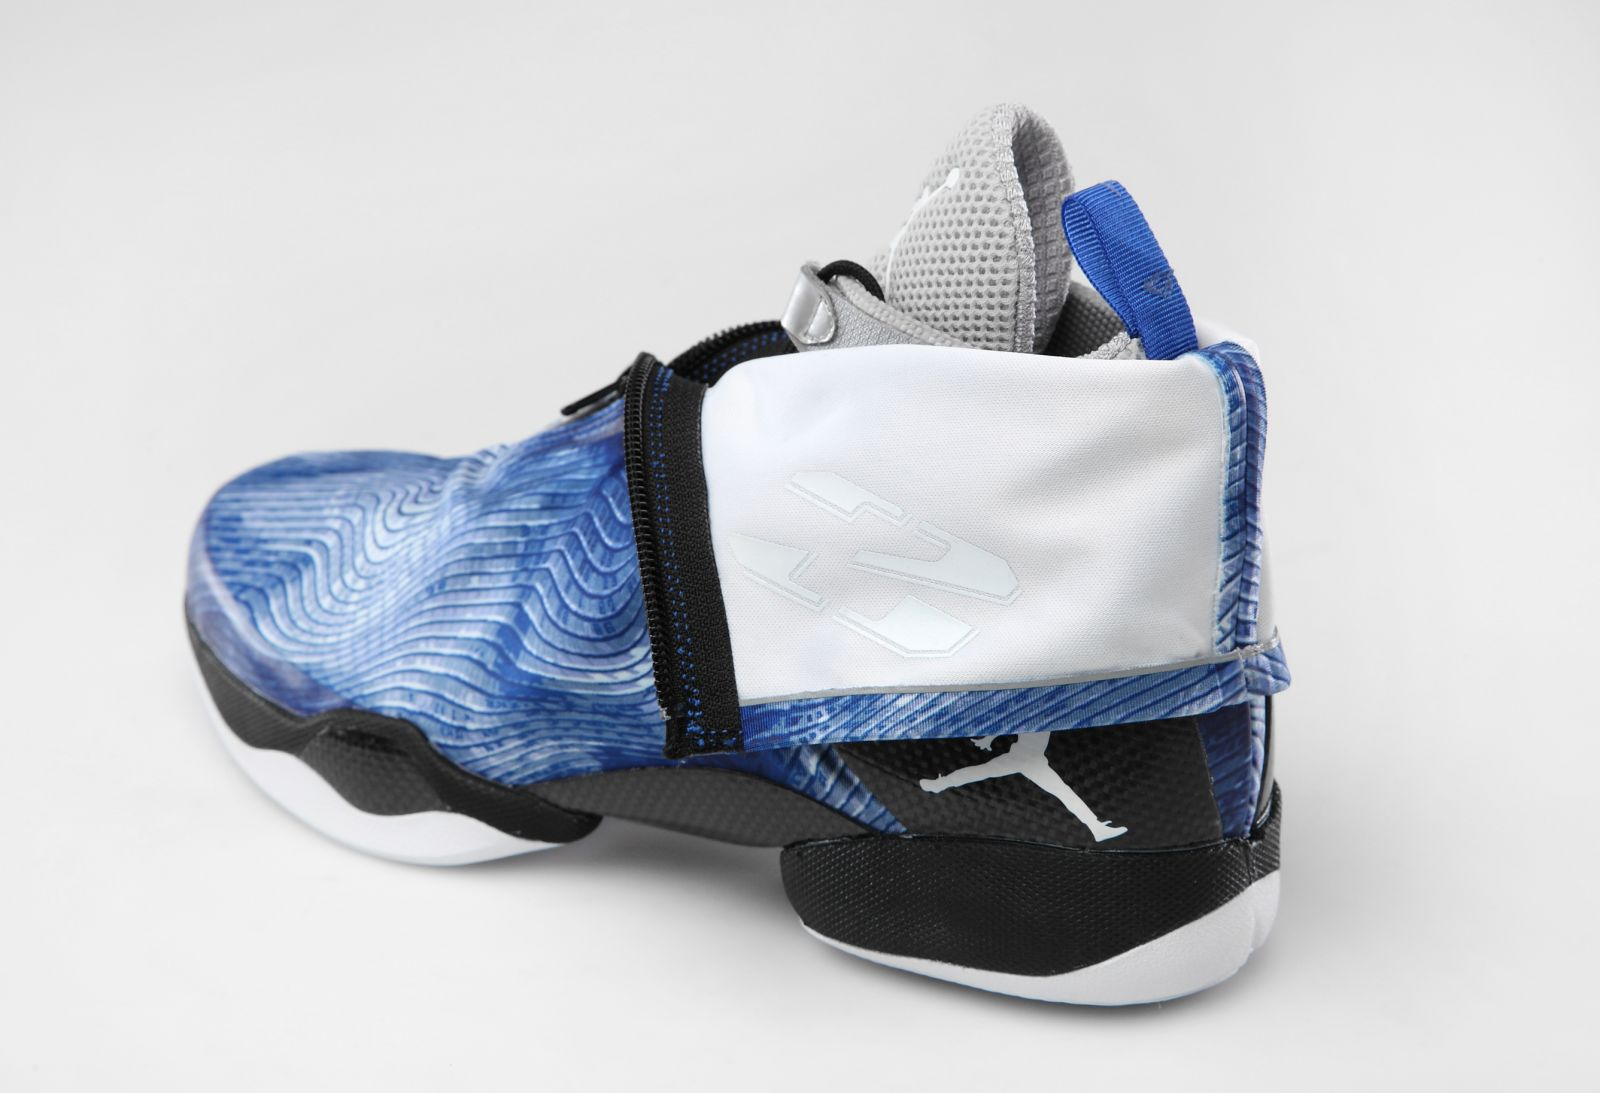 298b3410c04486 The Air Jordan XX8 is set to officially hit retail in Houston only